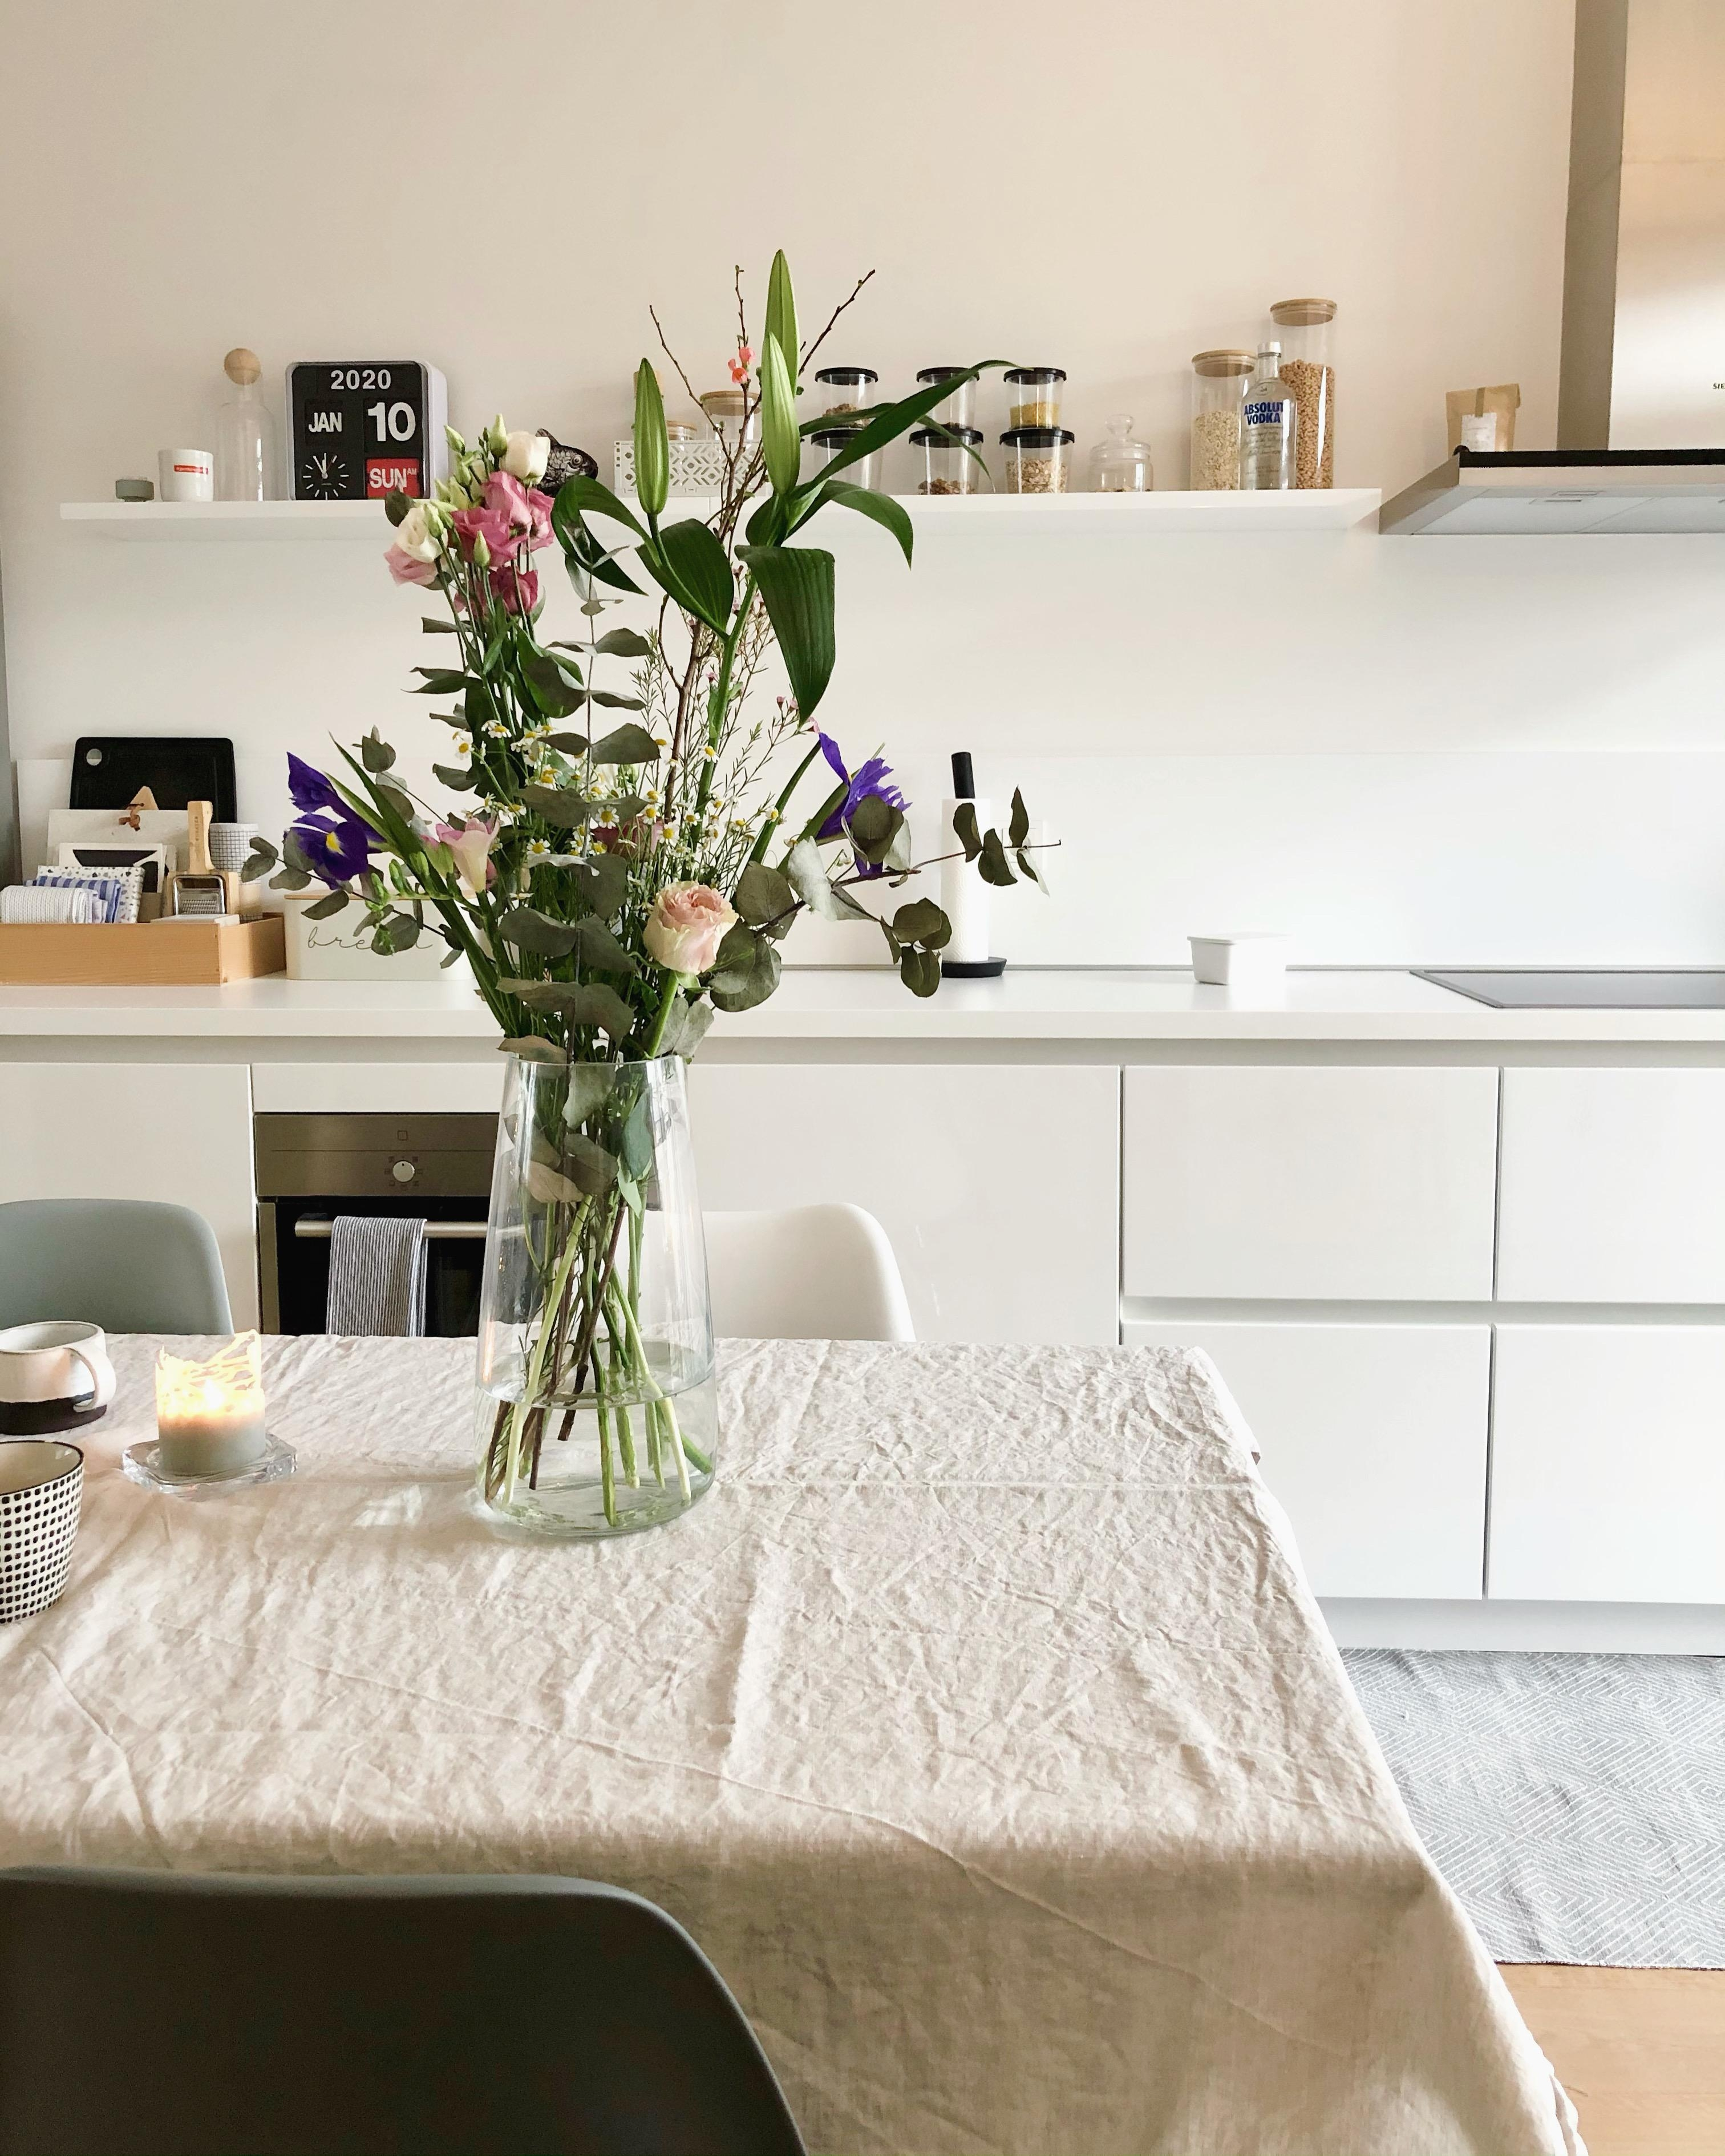 #freshflowers #kitchen #küche #table #deko #white #interior #nordicliving #minimalism #couchstyle #roominspo